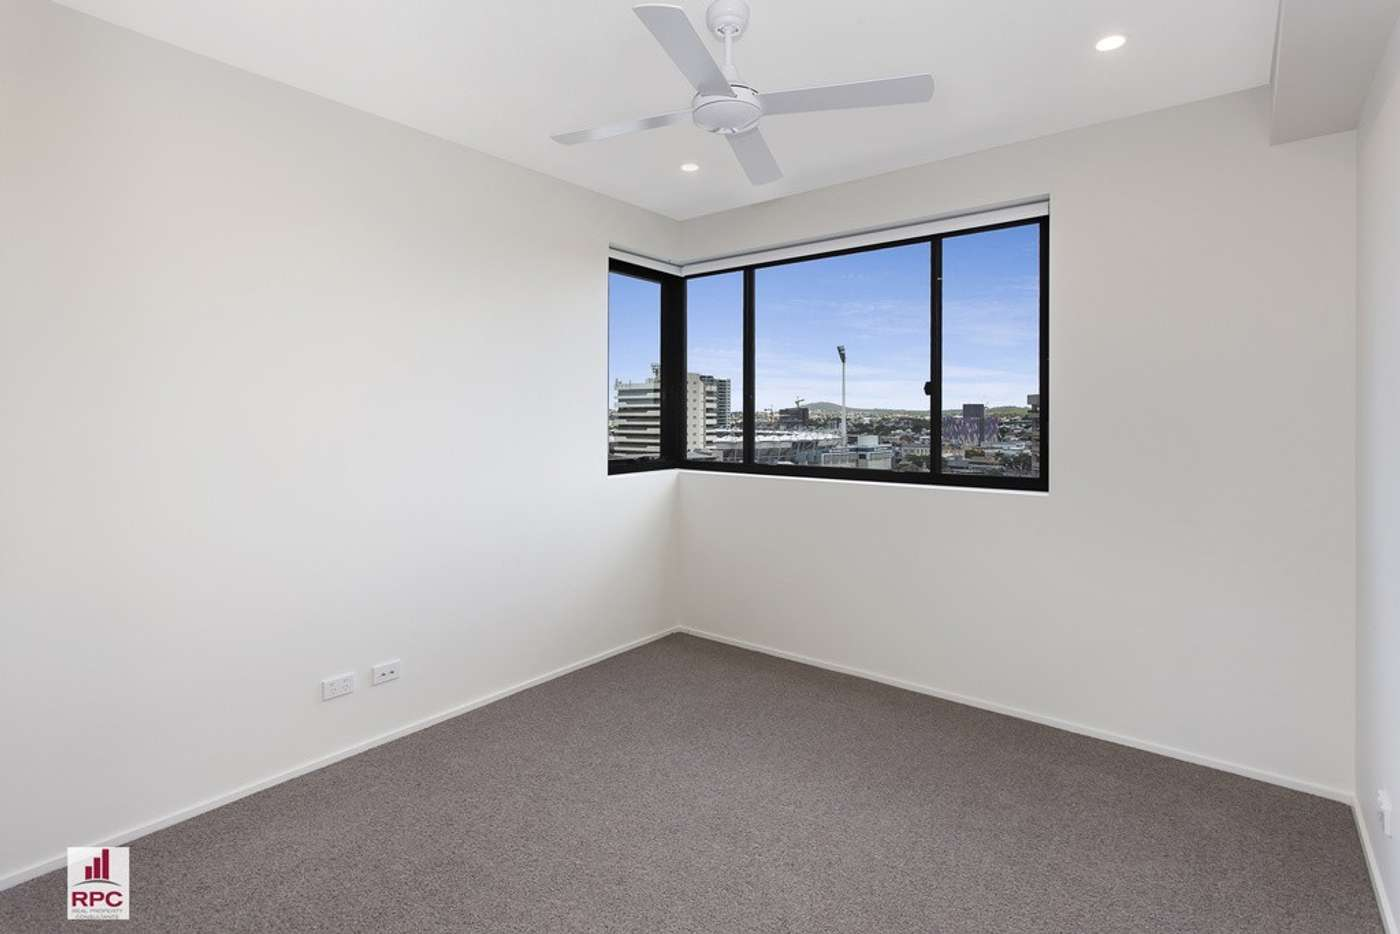 Sixth view of Homely apartment listing, 702/36 Anglesey Street, Kangaroo Point QLD 4169